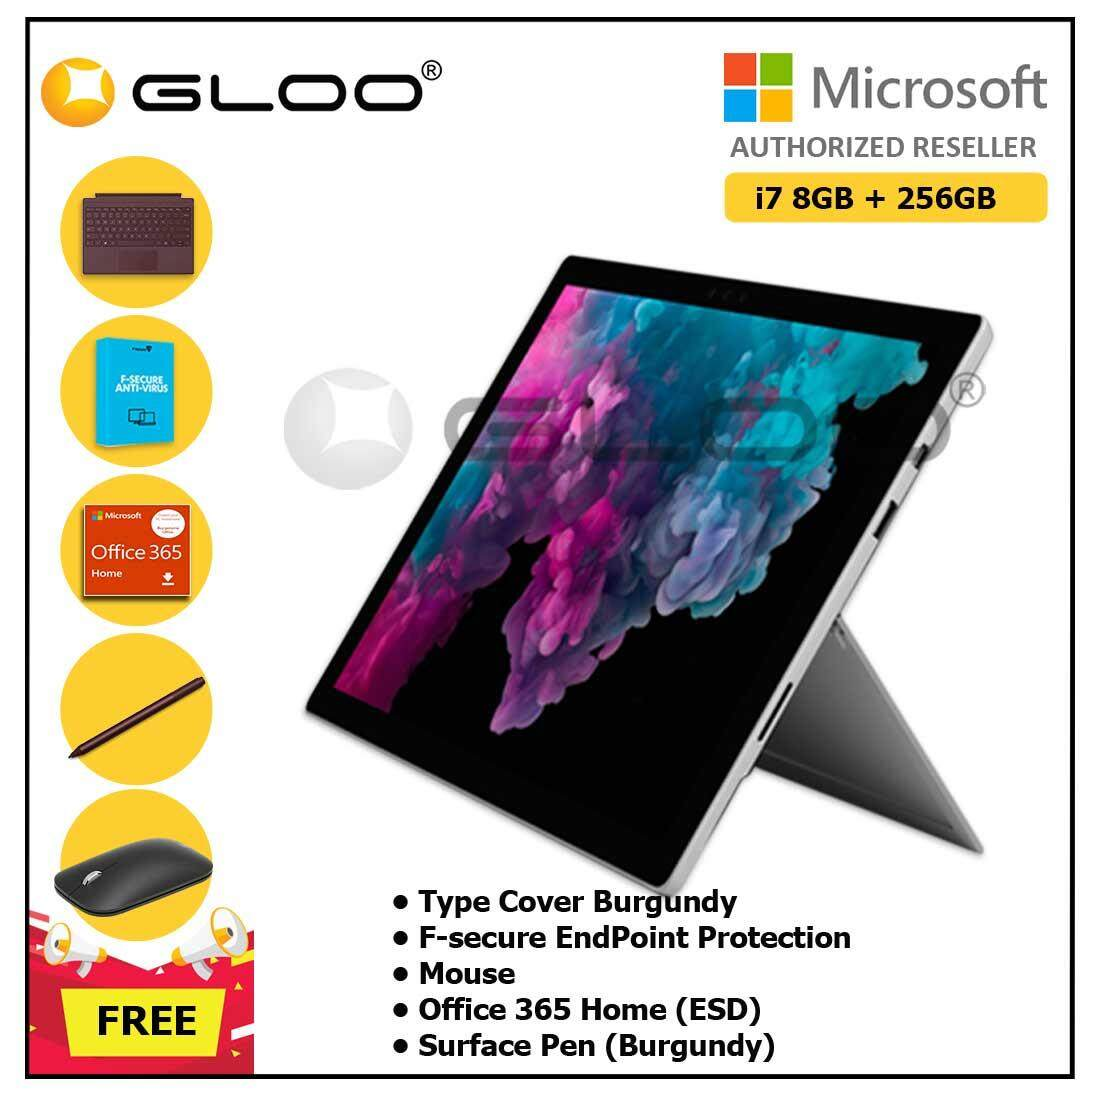 Microsoft Surface Pro 6 Core i7/8GB RAM - 256GB + Type Cover Burgundy + F-Secure End Point Protection + Office 365 Home (ESD) + Pen Burgundy + Mouse